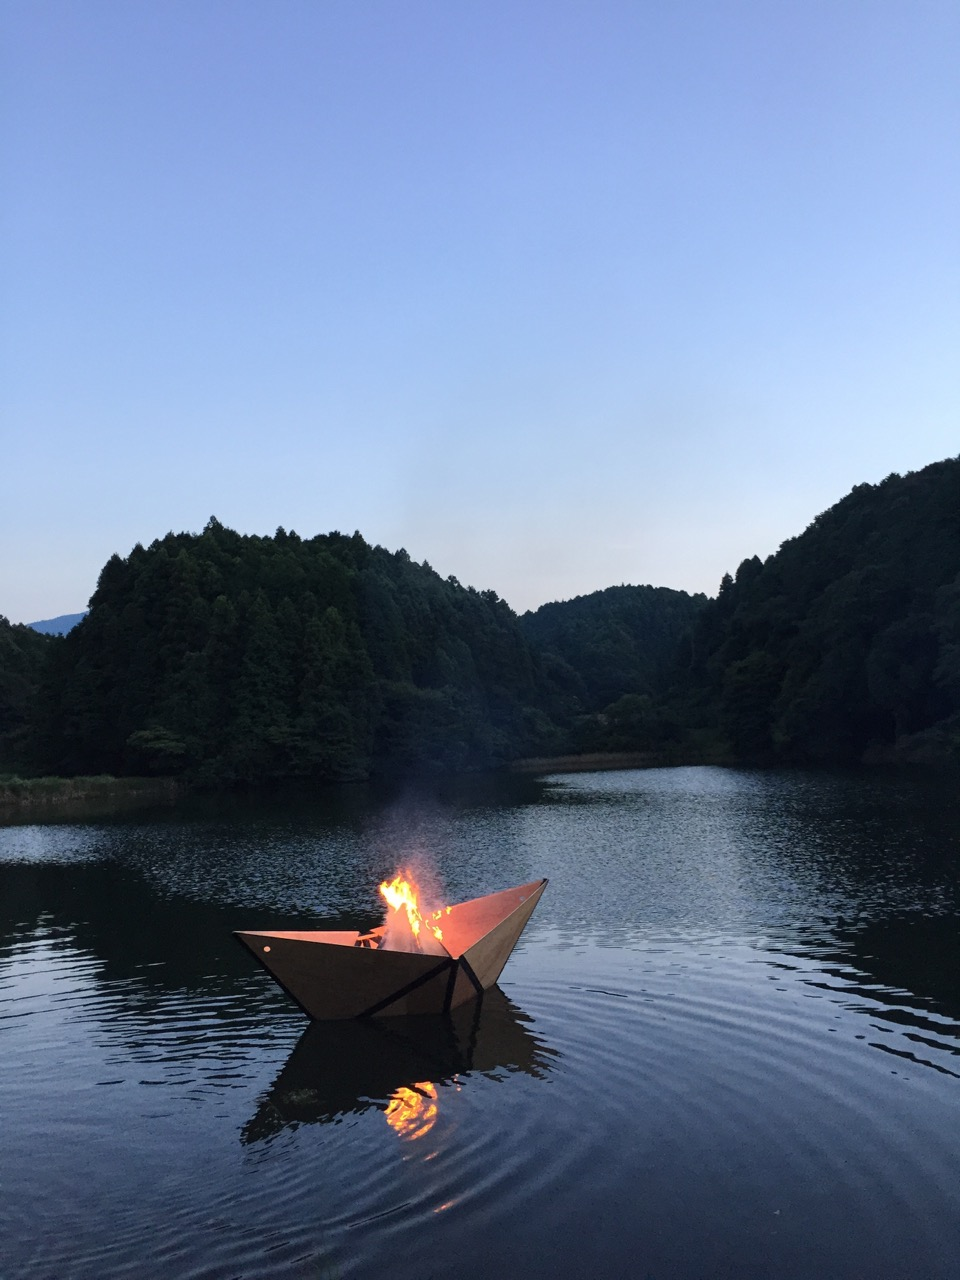 Burning Boat at Dusk